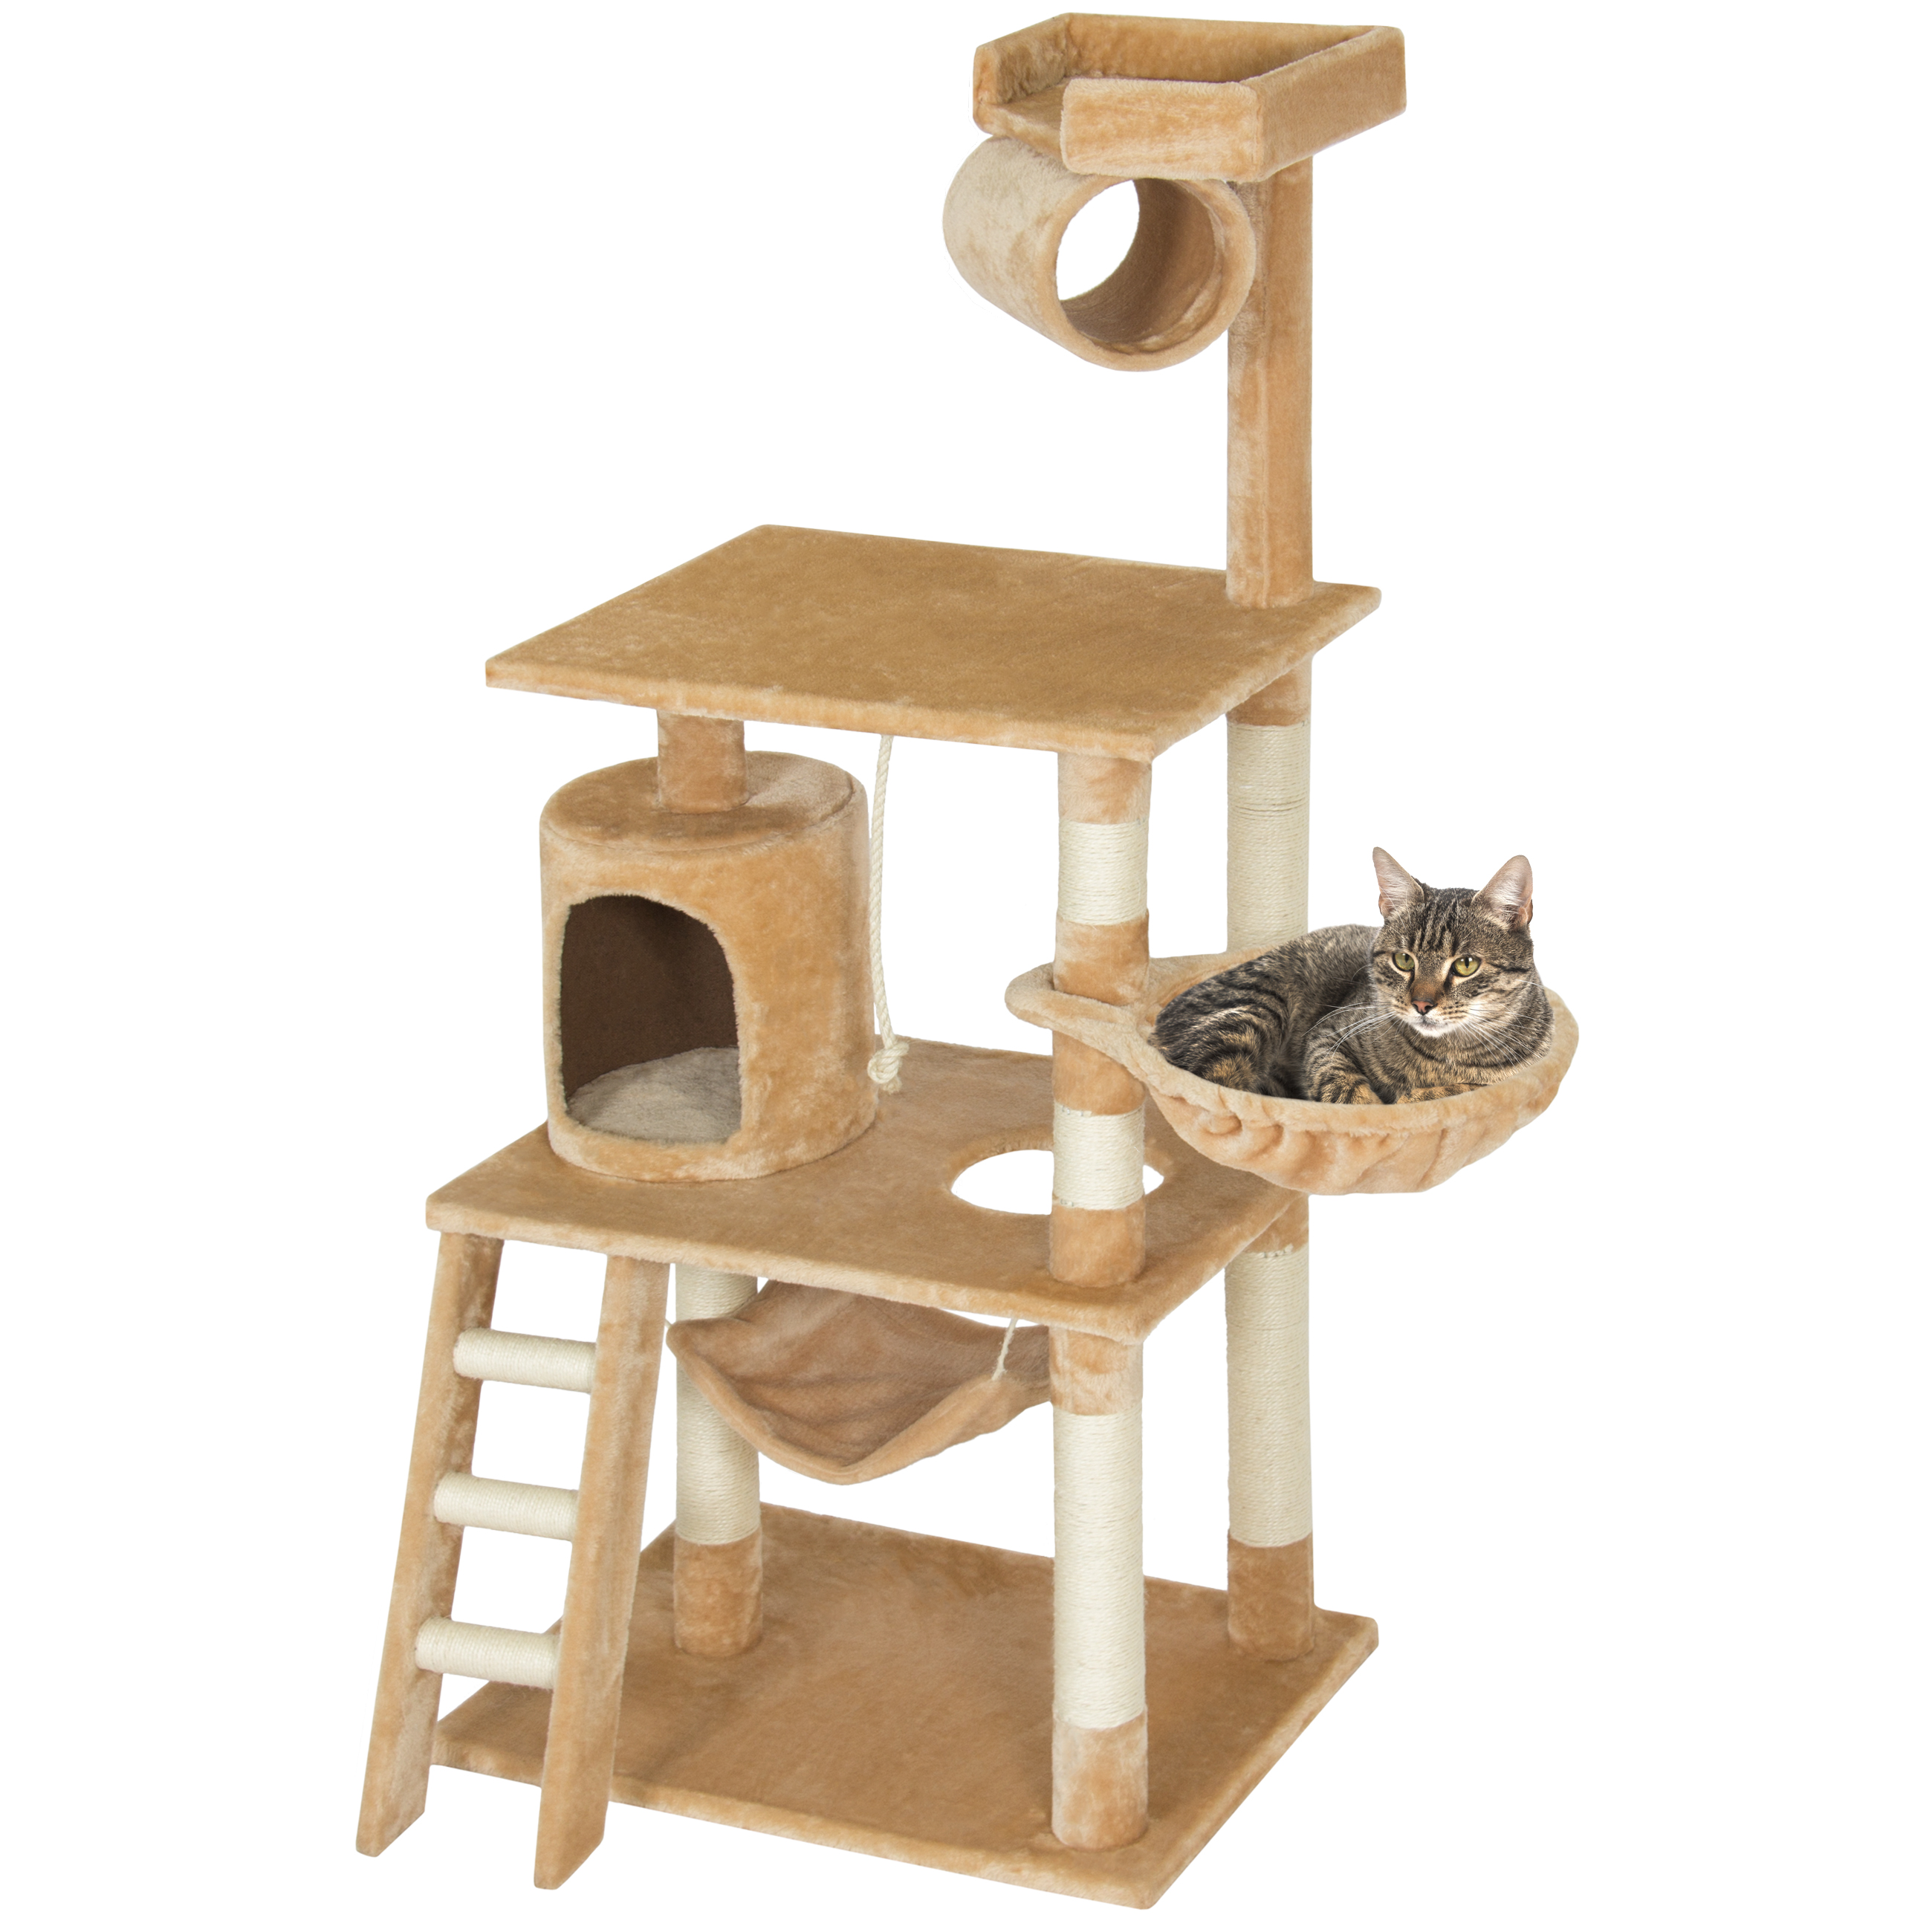 "Best Choice Products Pet Play House 60"" Cat Tree Scratcher Condo Furniture - Beige"